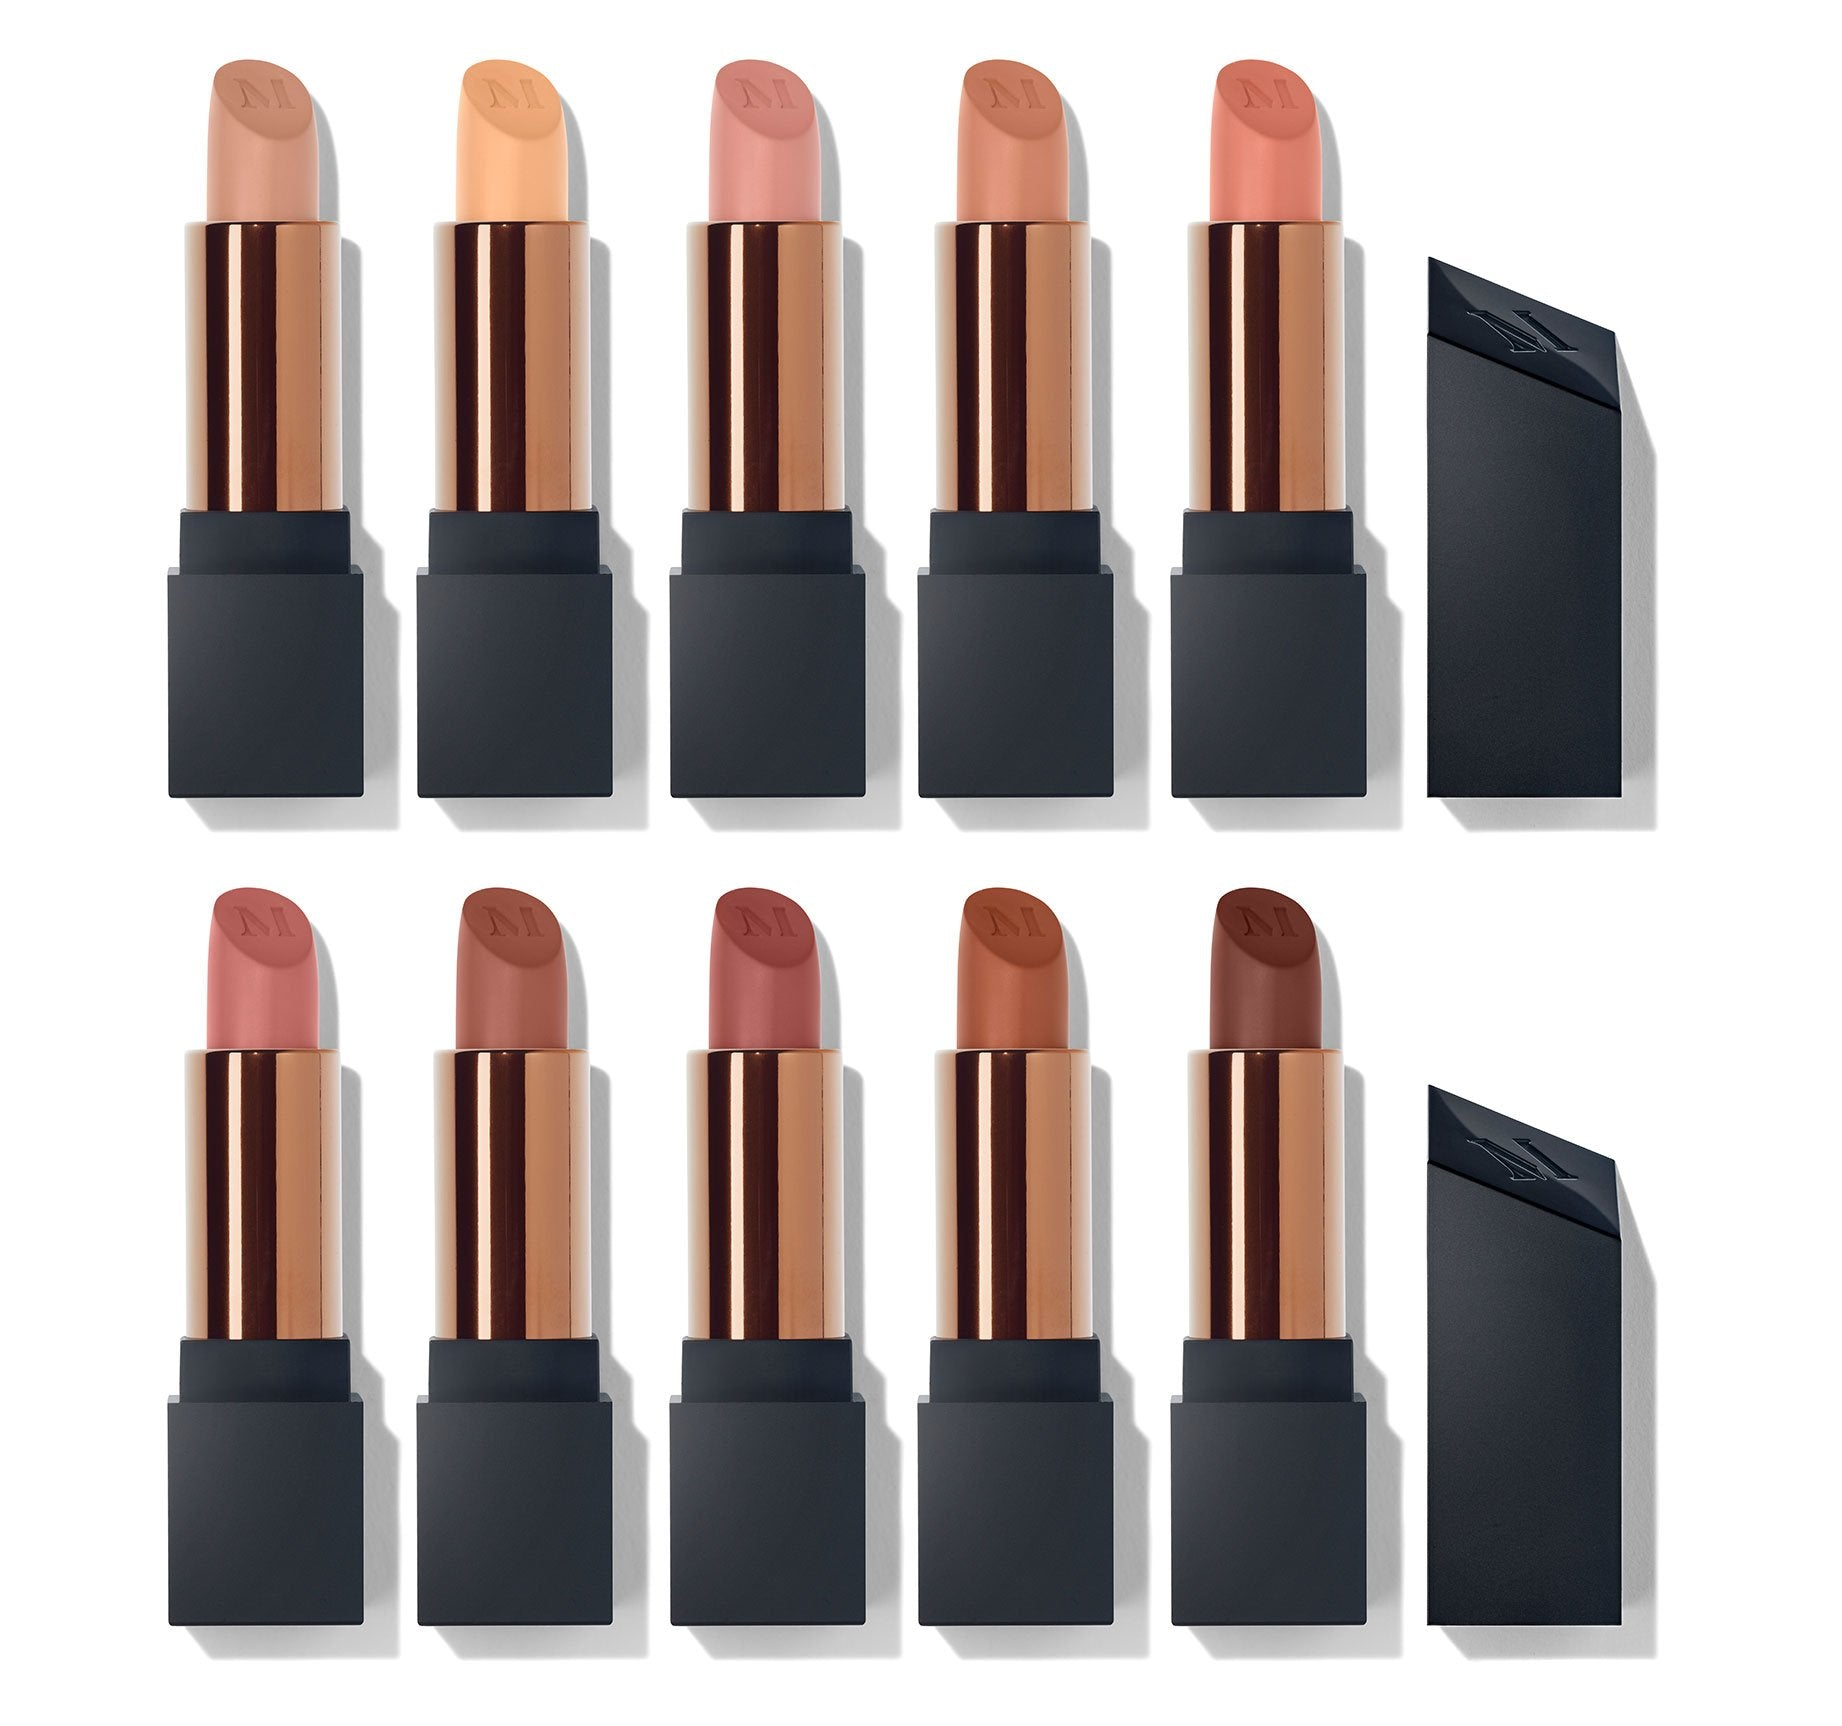 MEGA MATTE LIPSTICK COLLECTION, view larger image